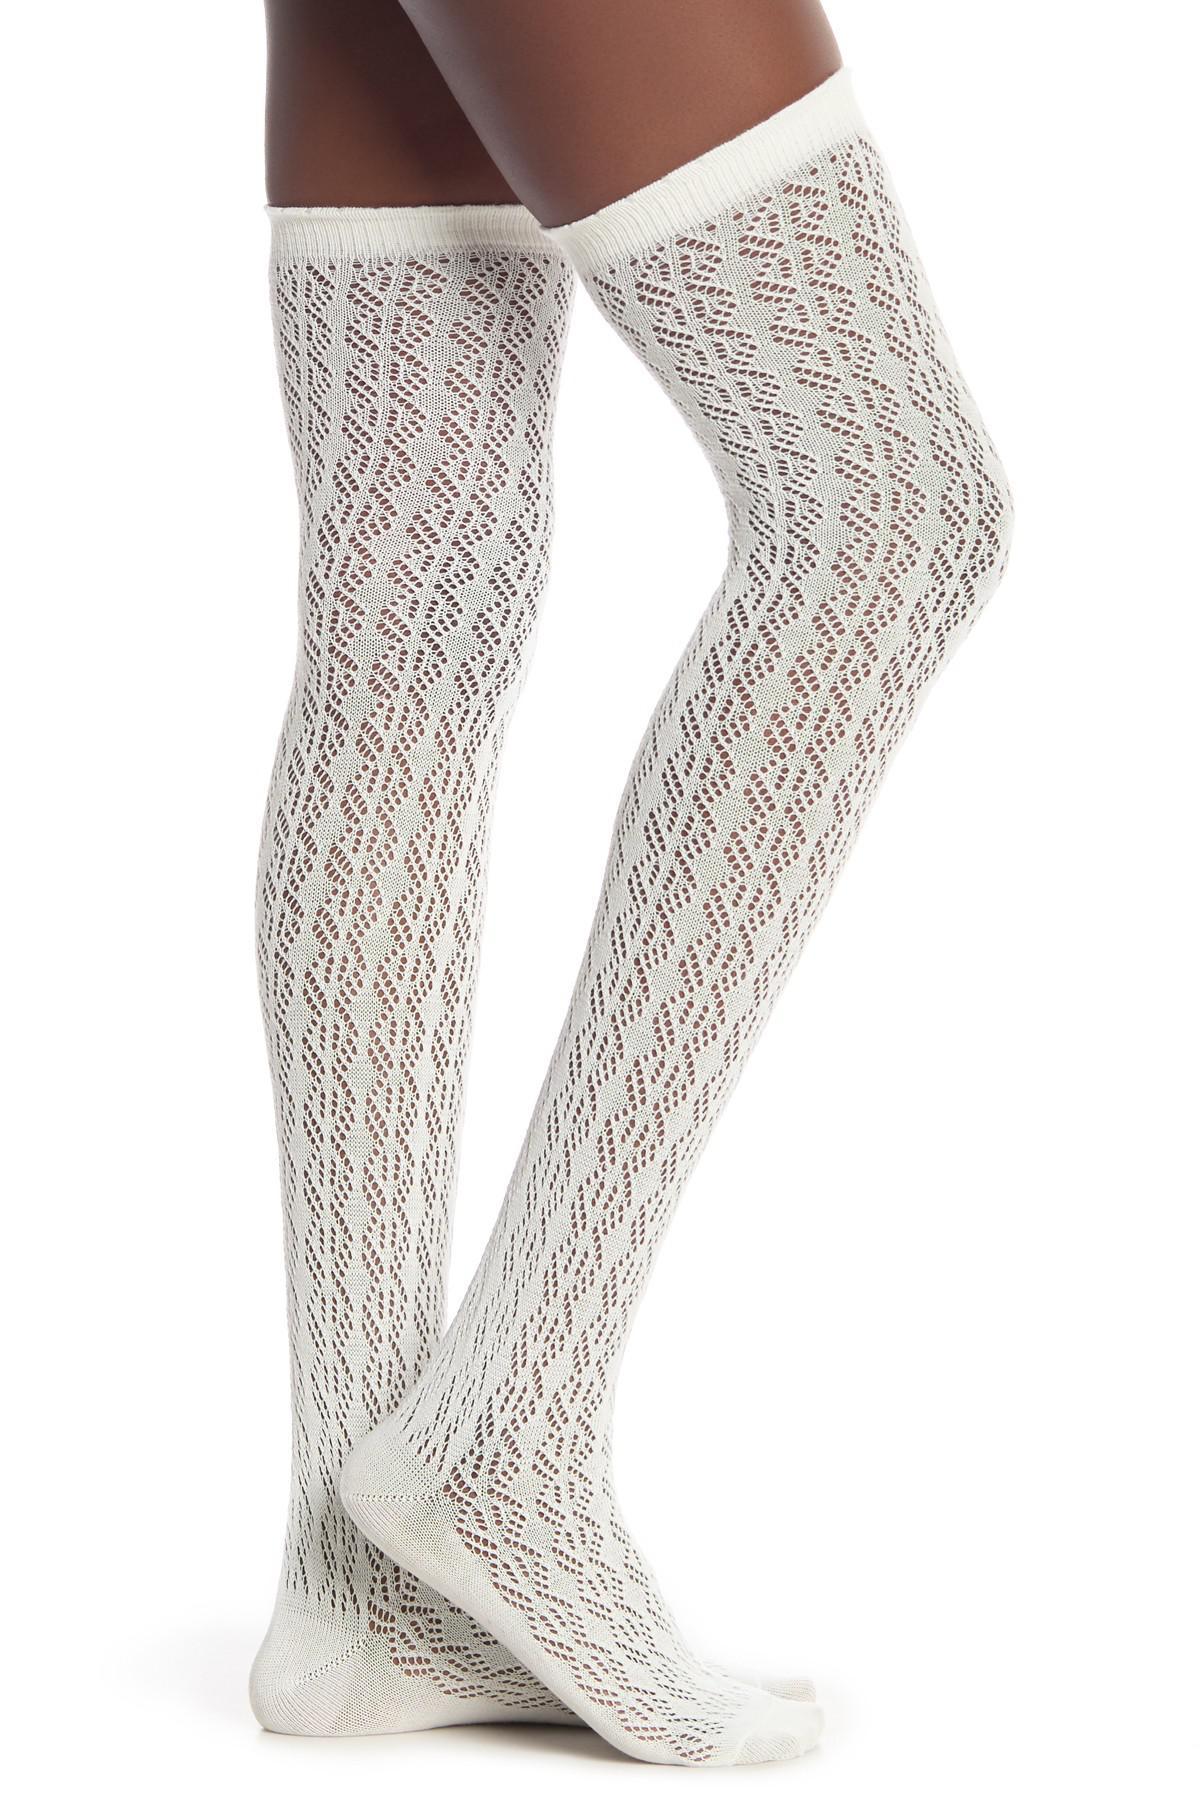 7313222213d Lyst - Steve Madden Diamond Crochet Over The Knee Length Socks ...